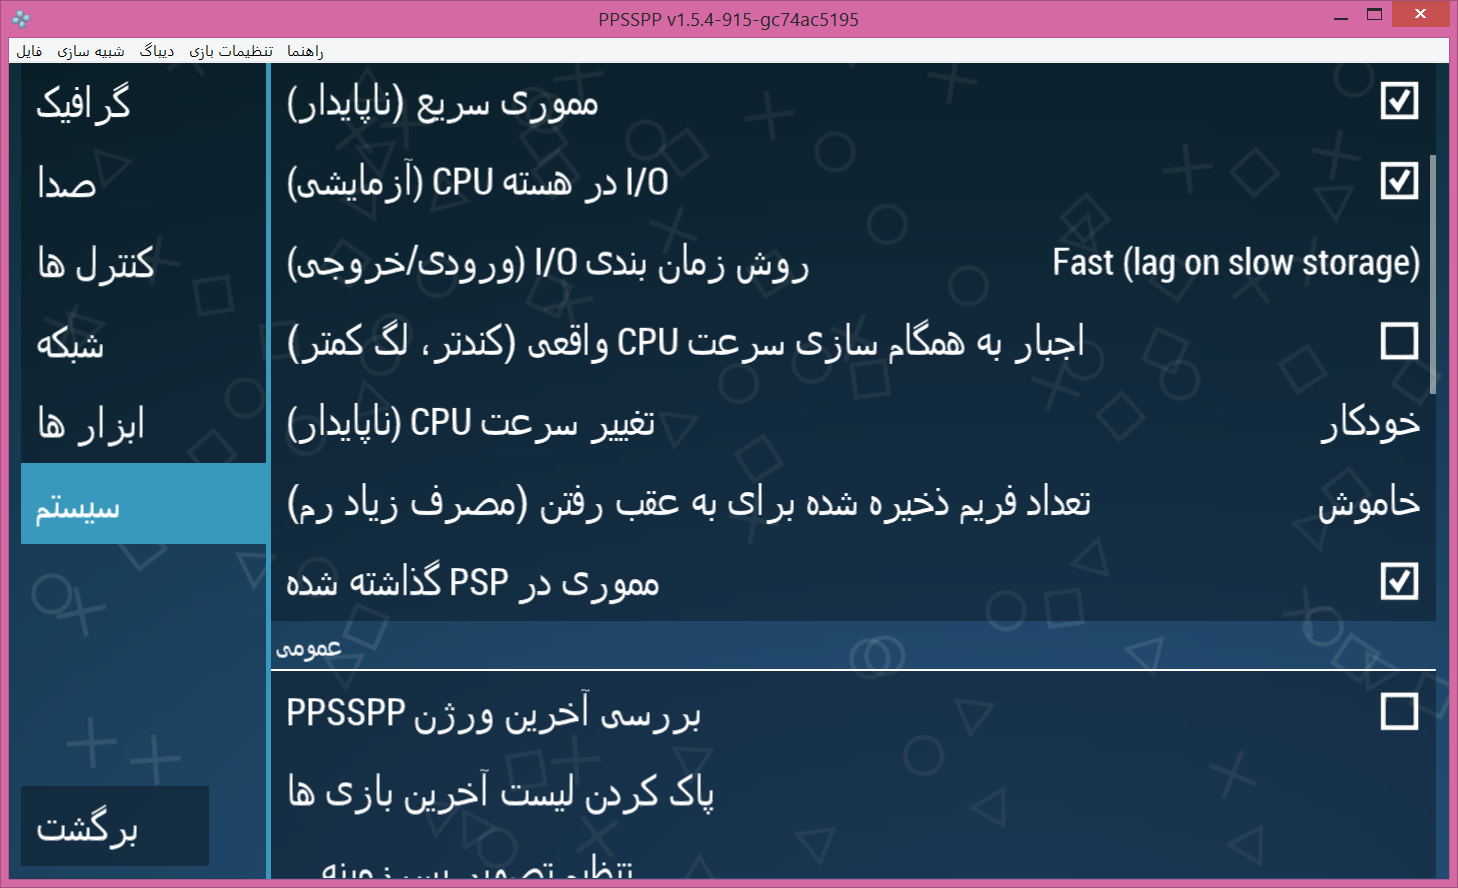 PC and Android versions don't match (Farsi/Arabic) · Issue